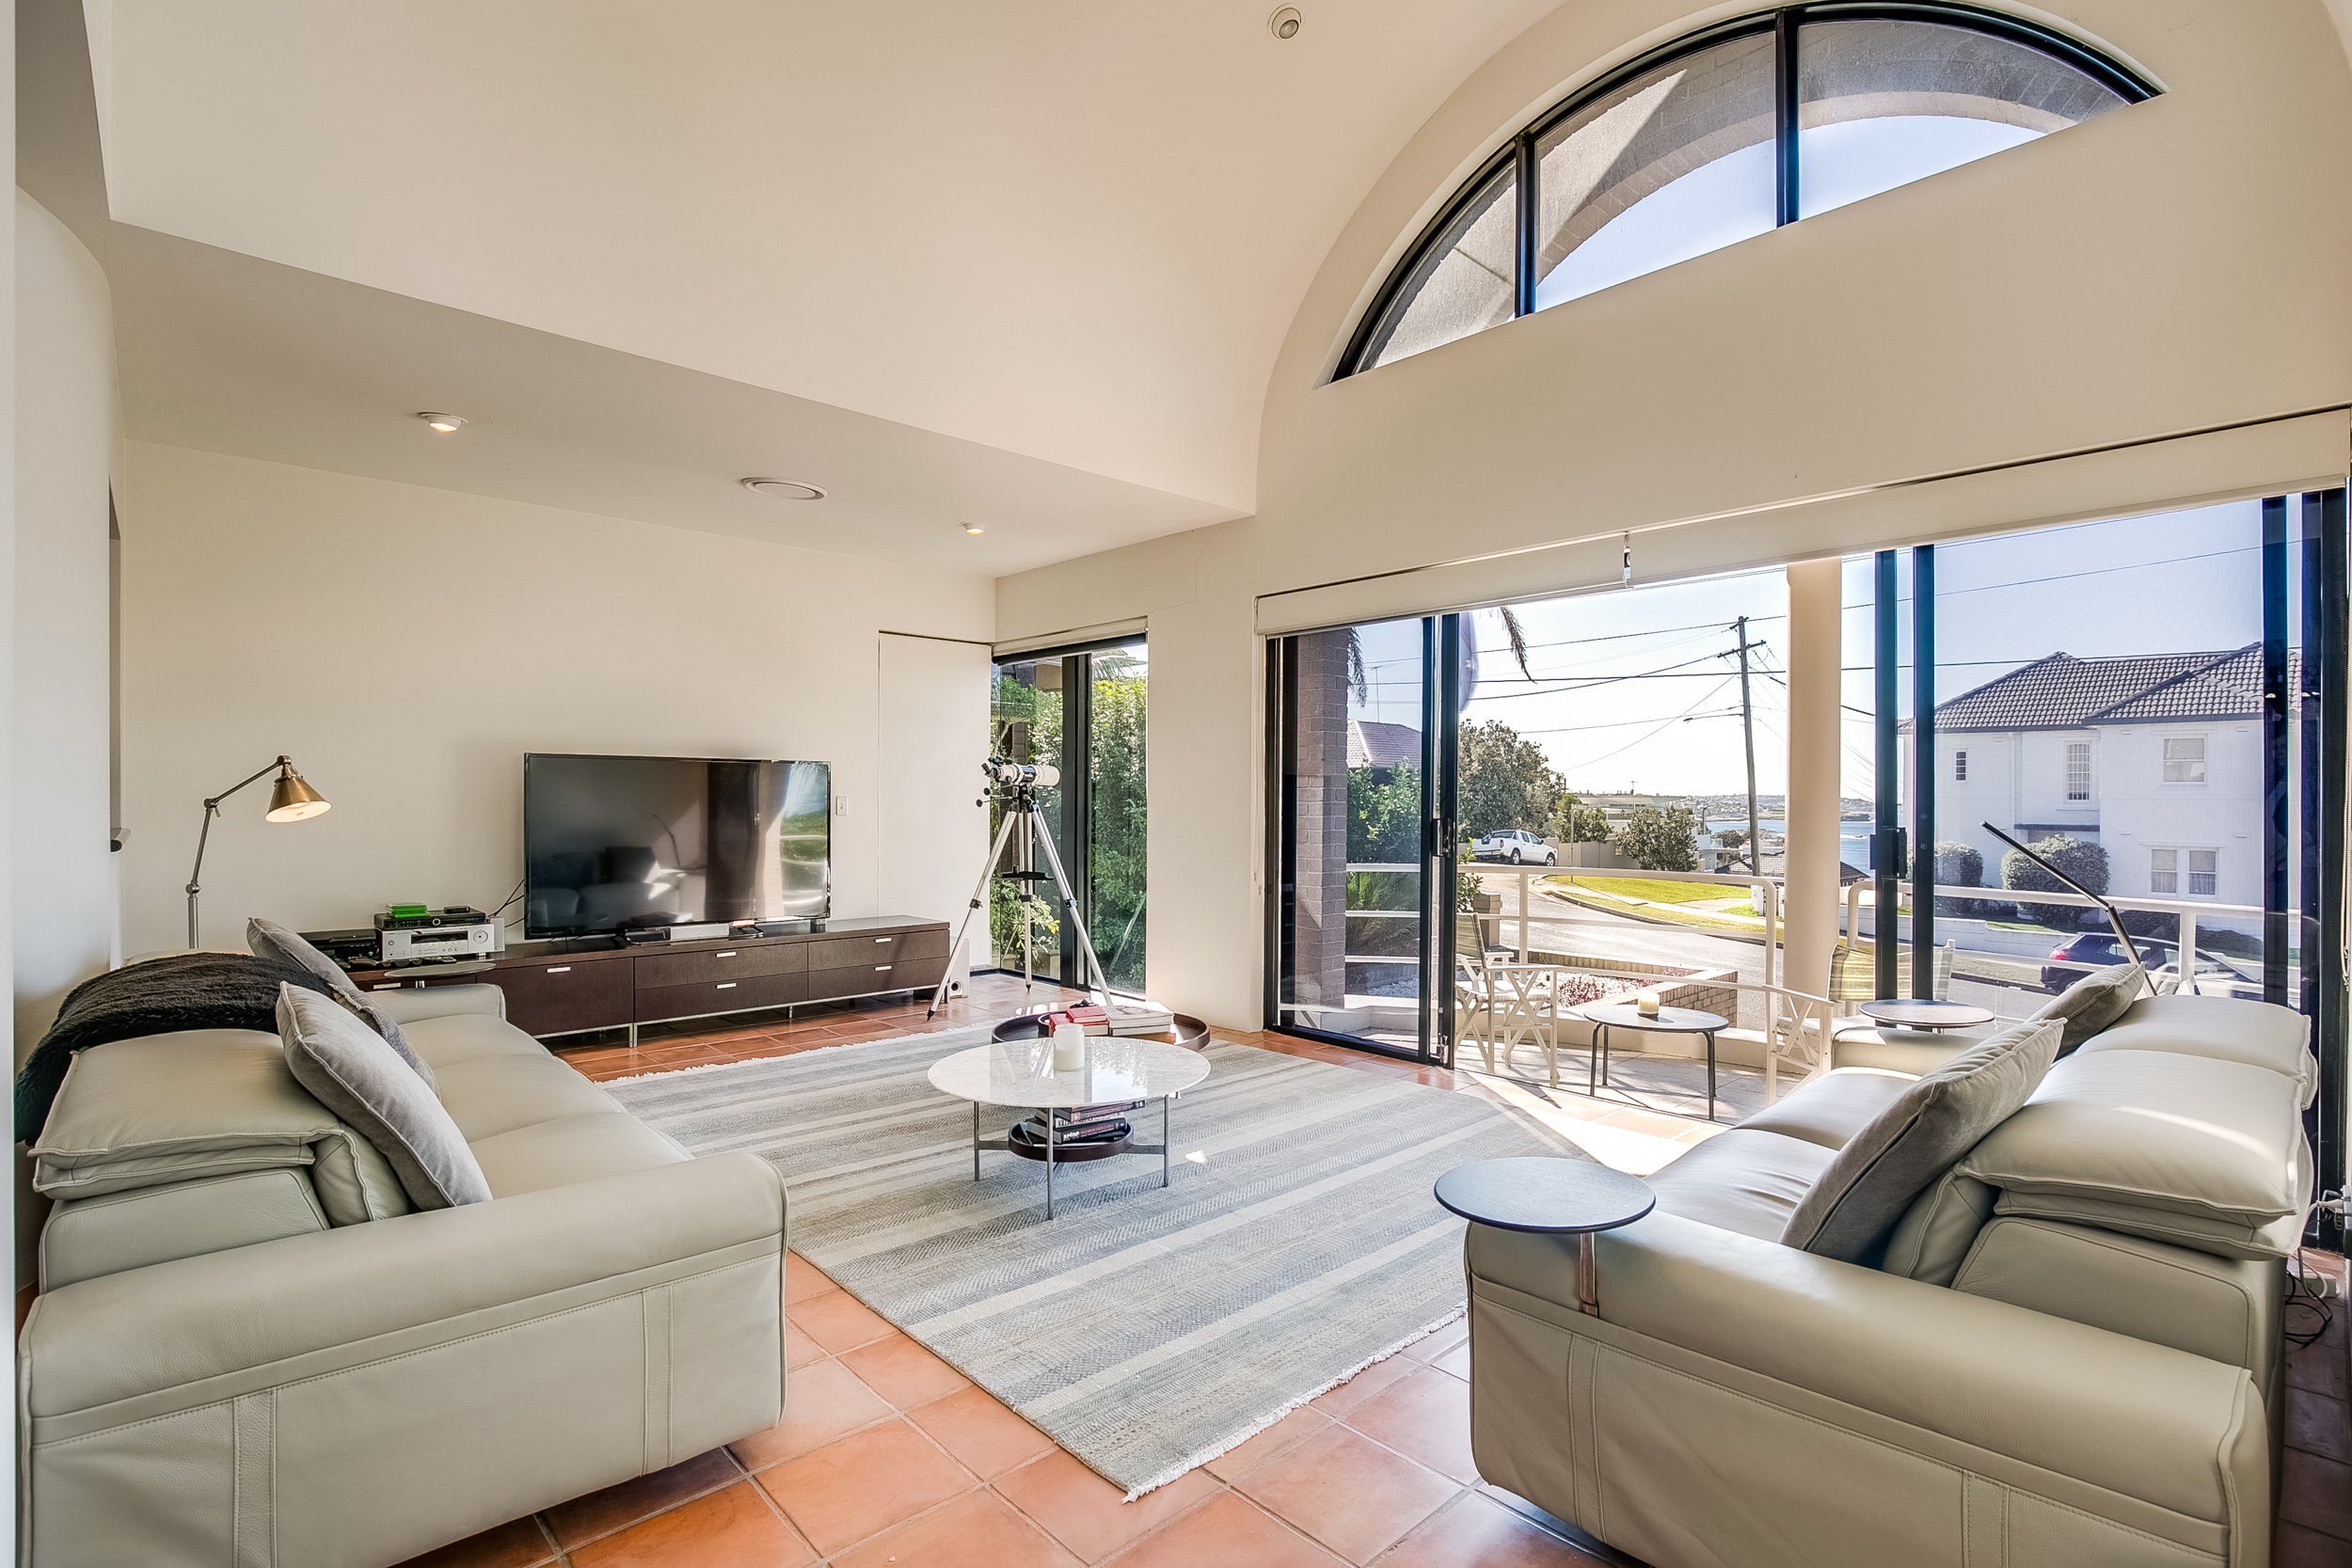 Maroubra beach house with oceanview. Bondi Beach holiday Homes.jpg